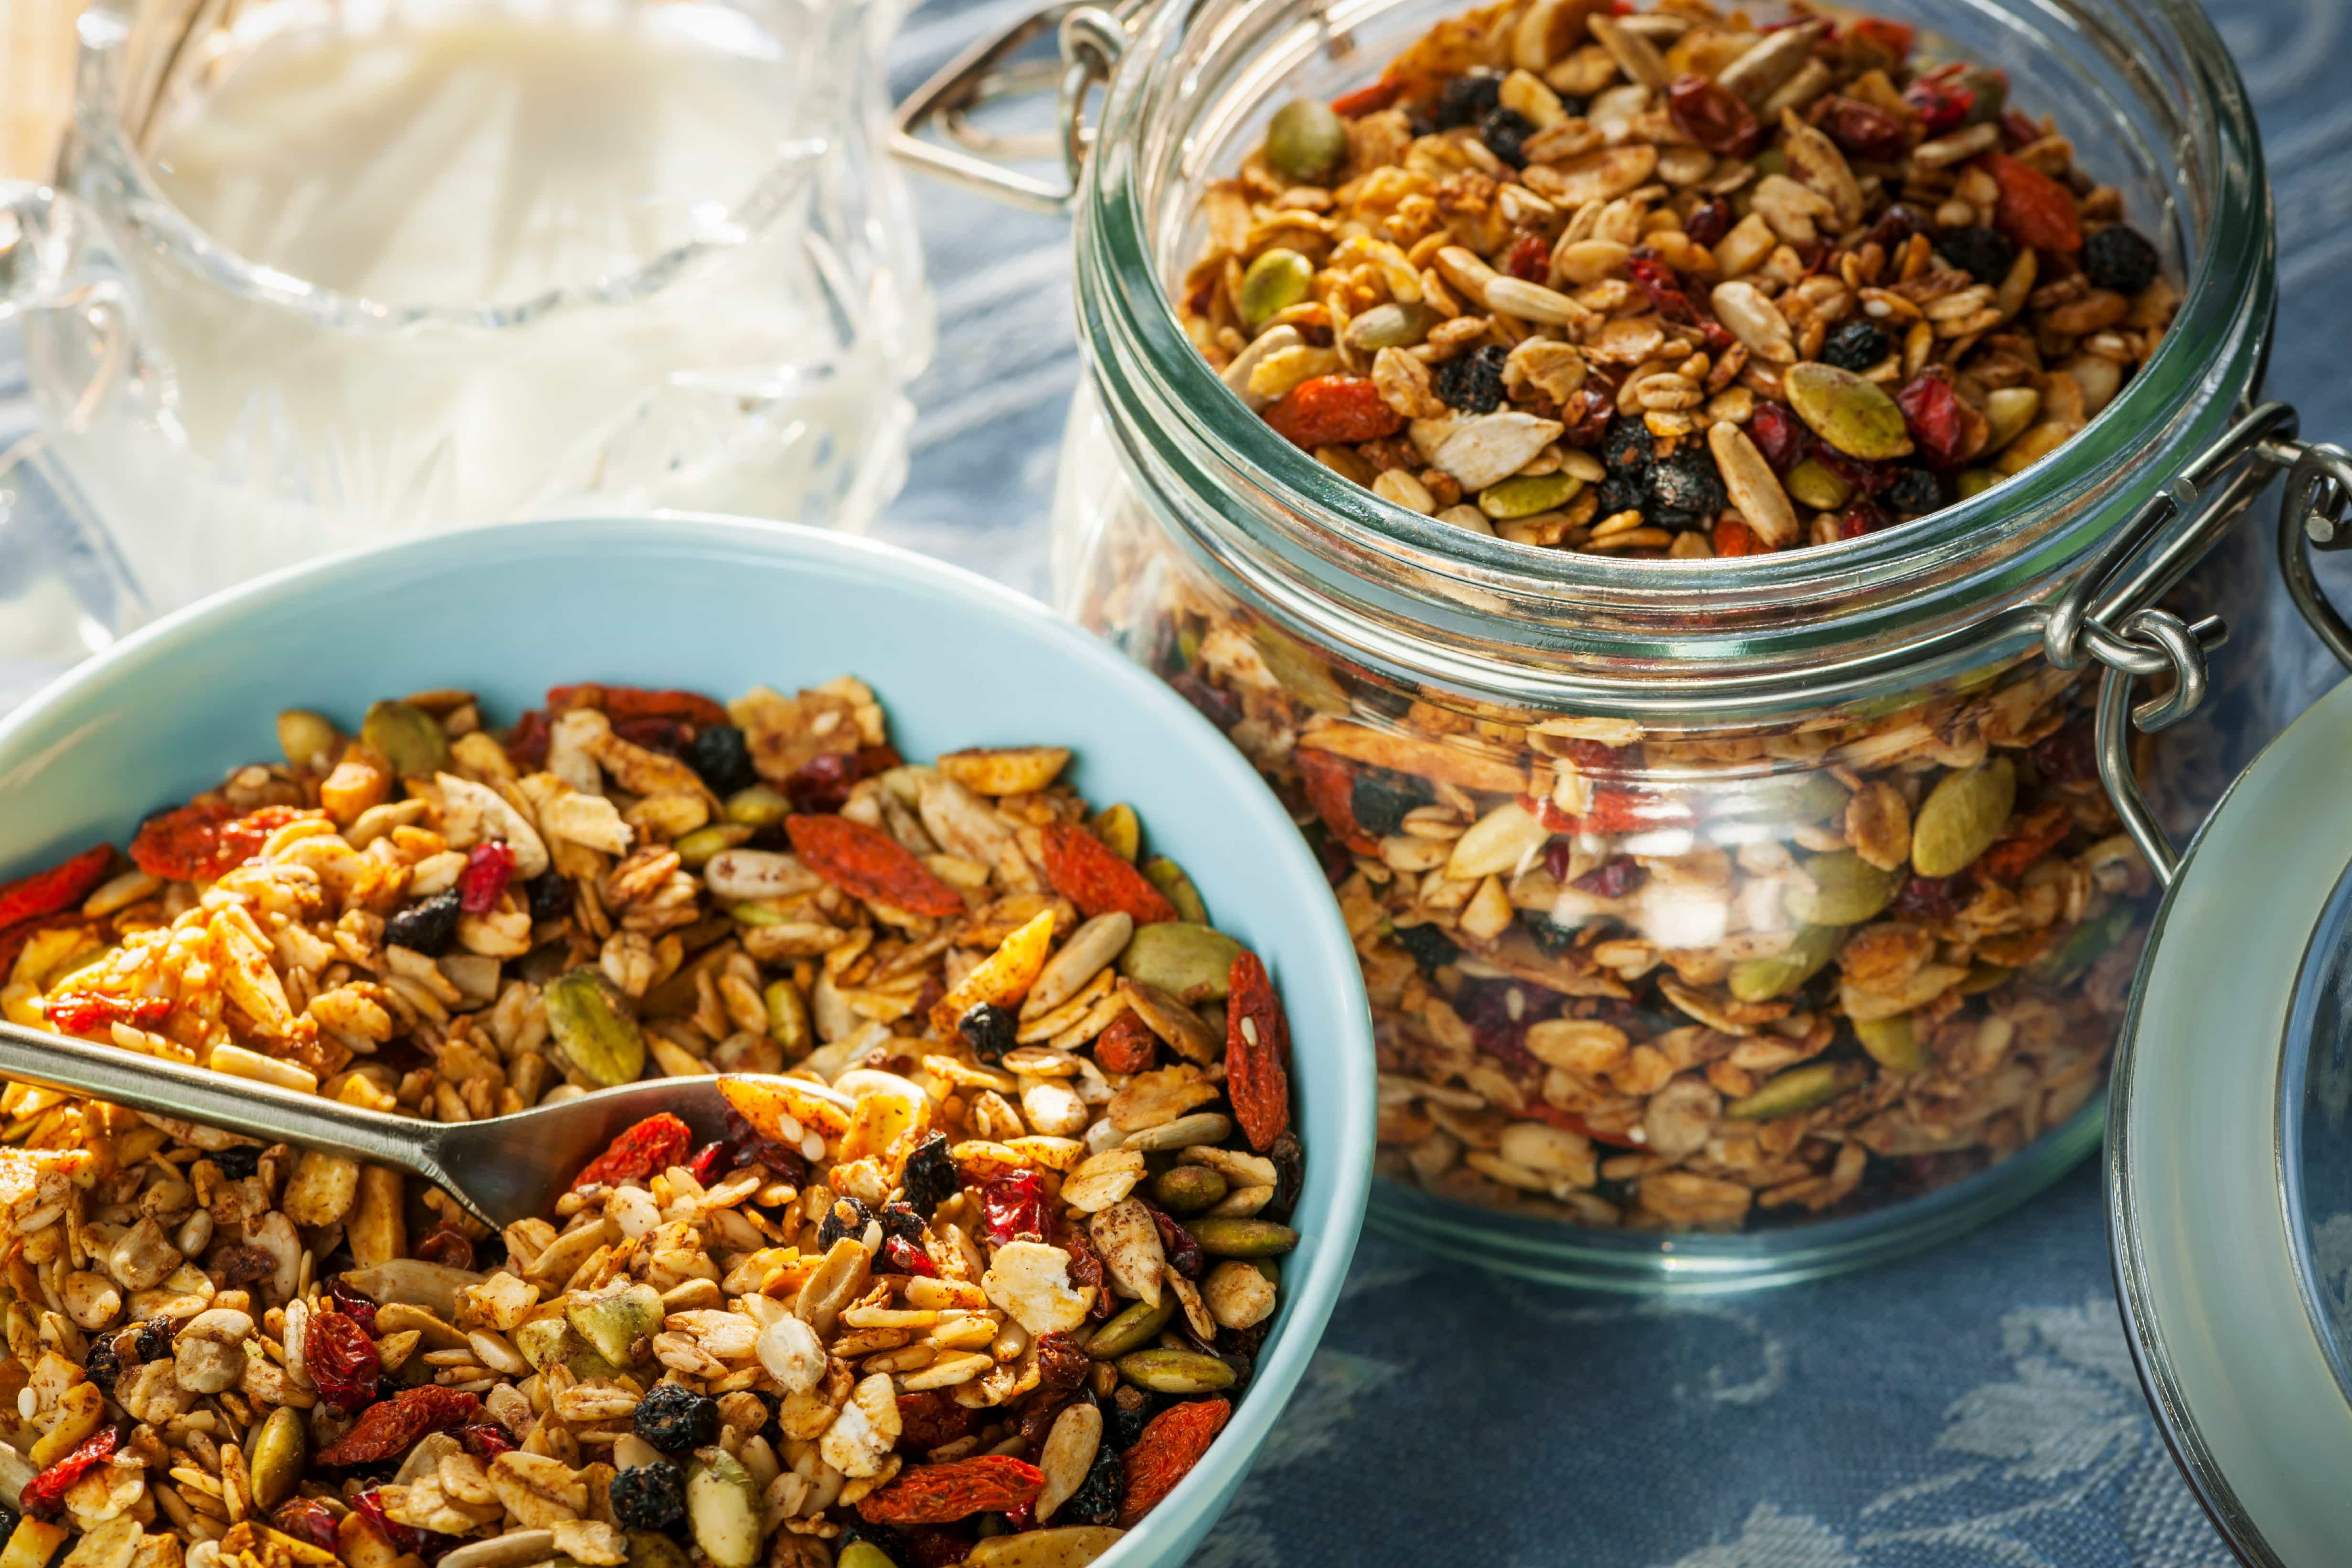 Jar of granola, the perfect food source for ants